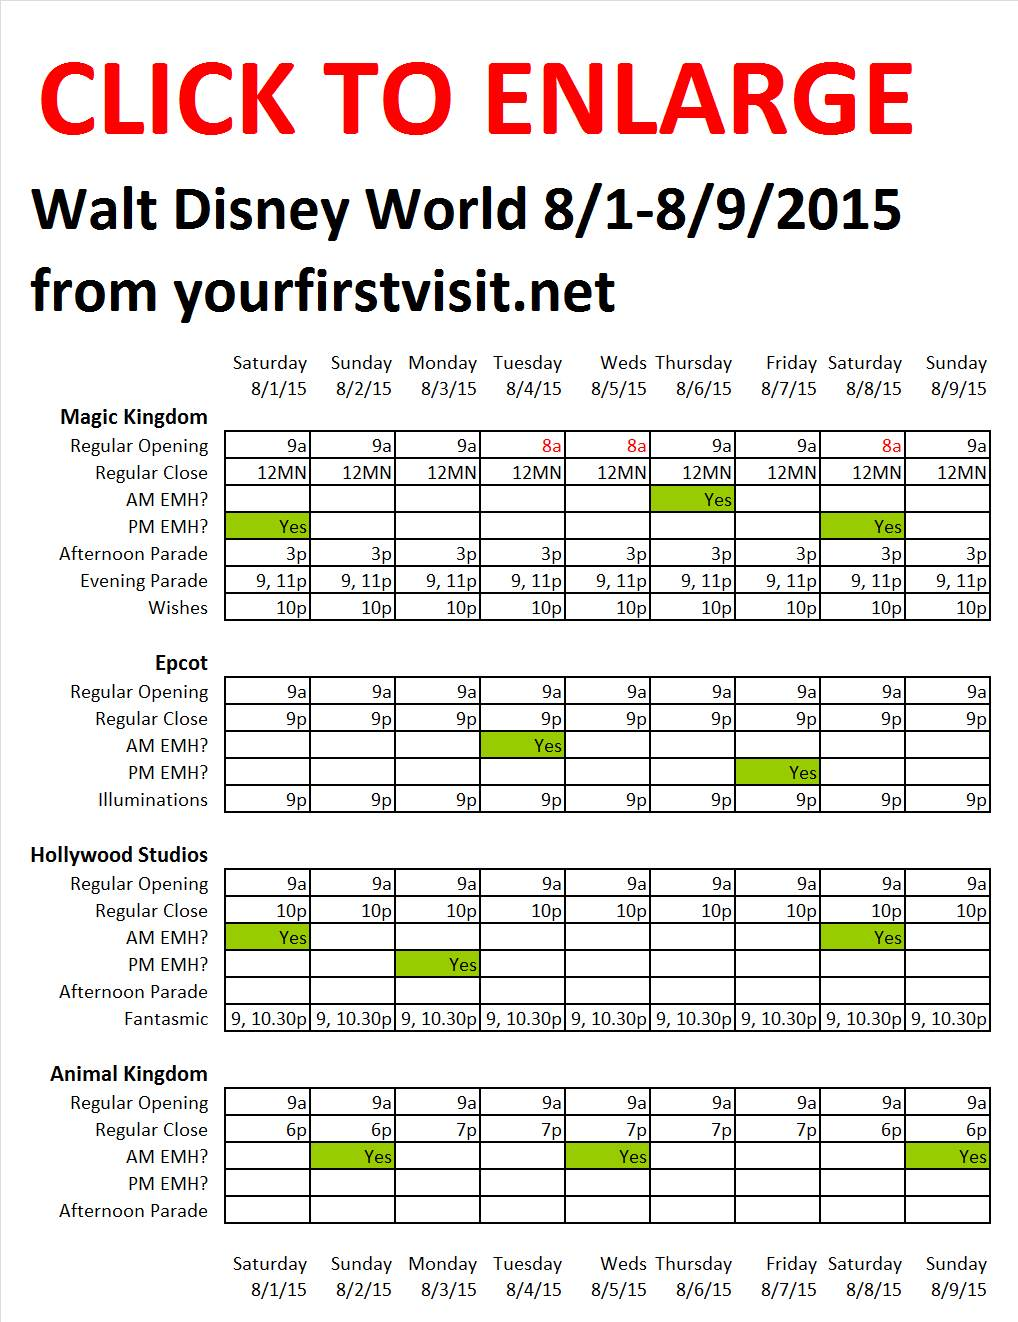 Disney World 8-1 to 8-9-2015 from yourfirstvisit.net